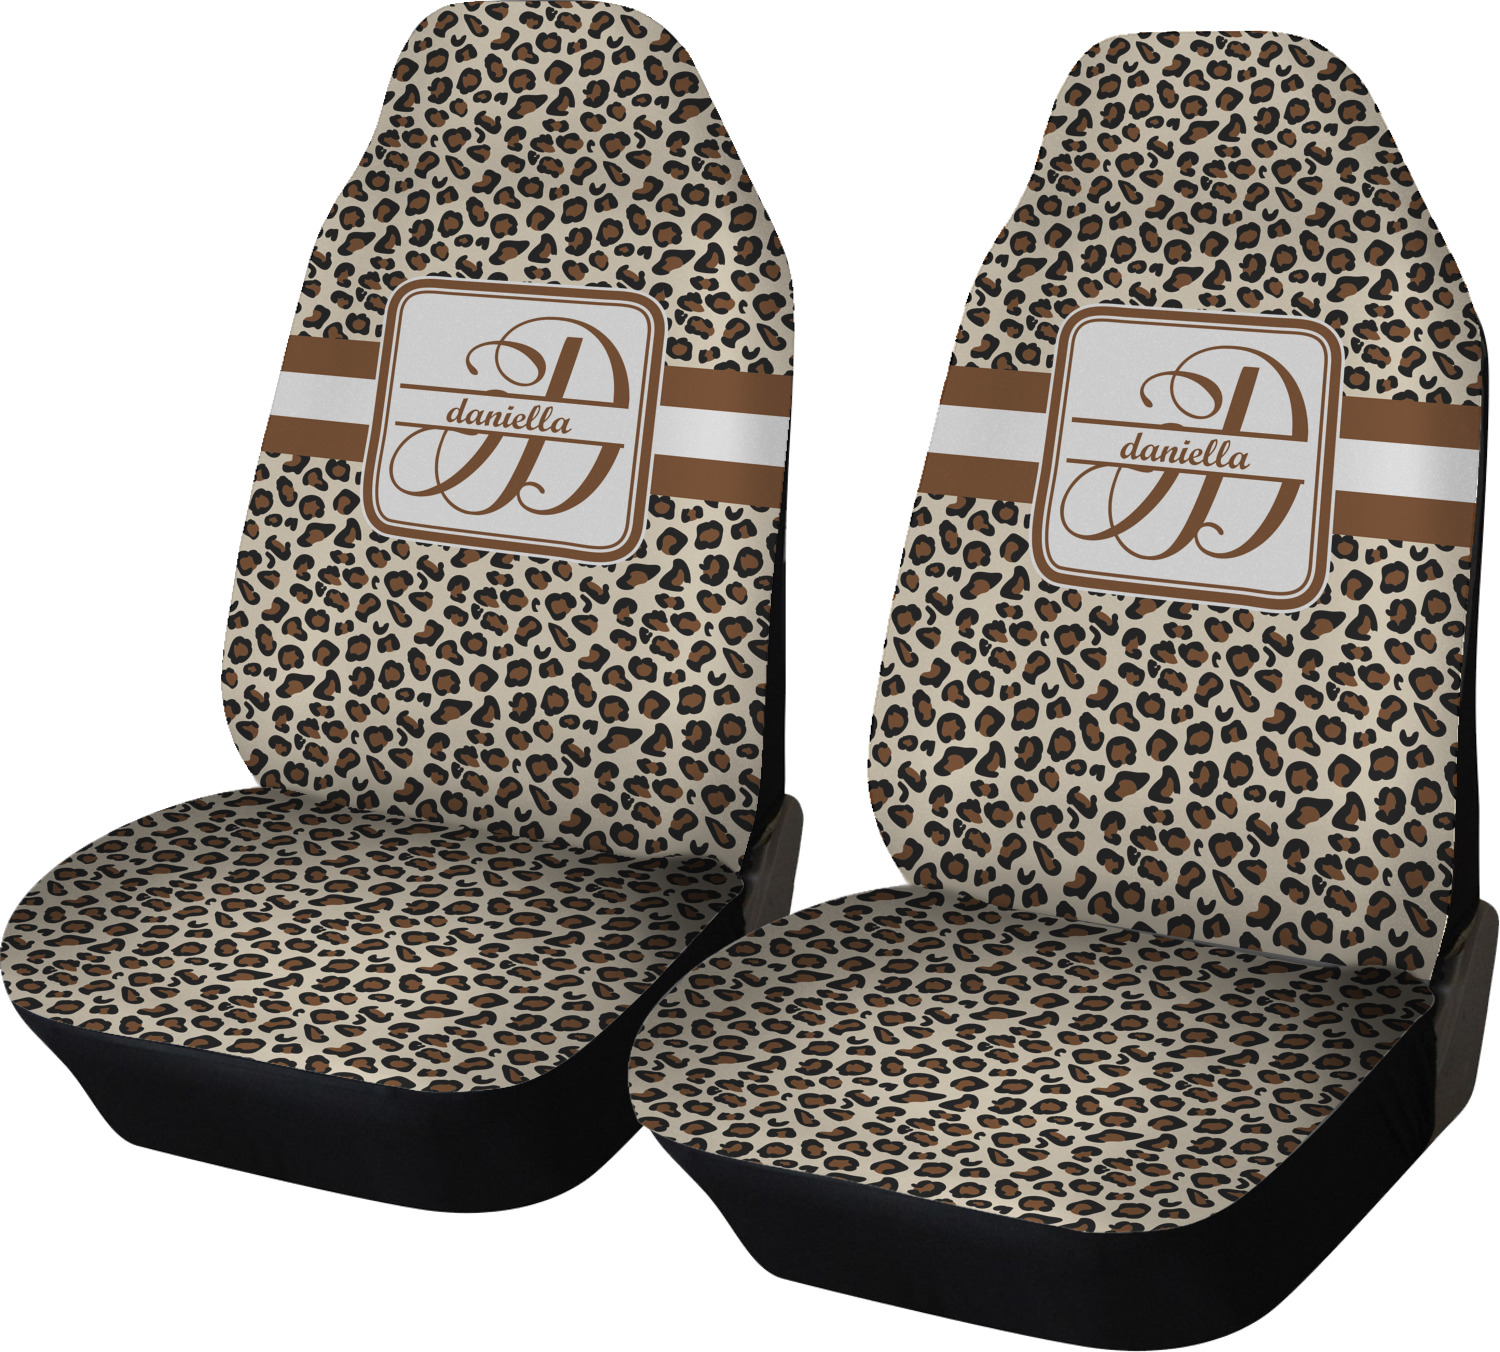 Leopard Print Car Seat Covers (Set of Two) (Personalized